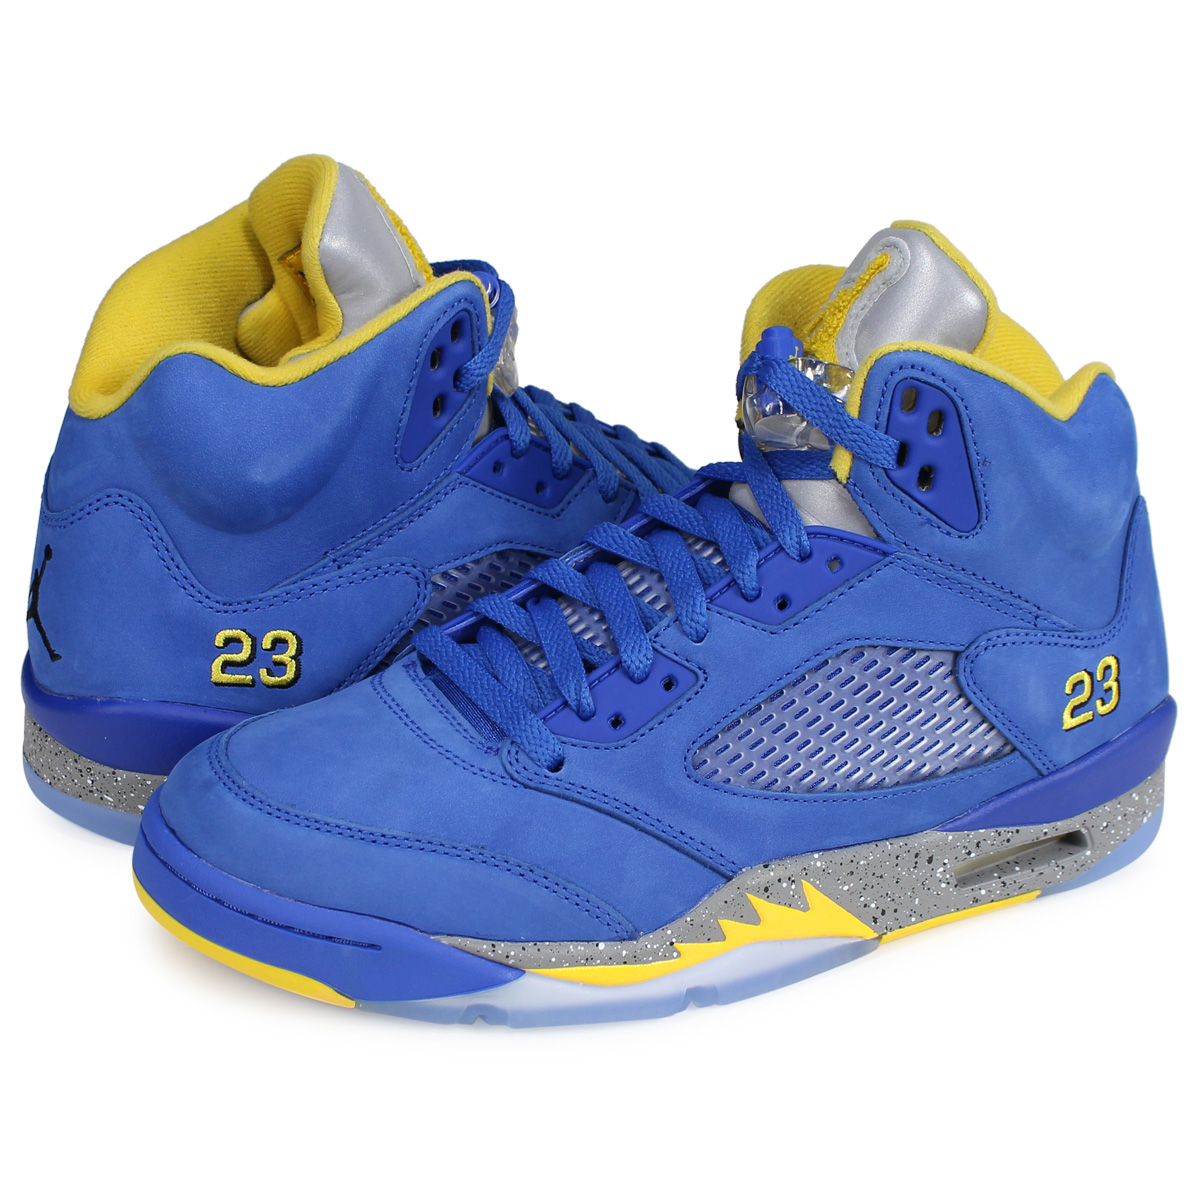 designer fashion 3ed73 4cb8b Nike NIKE Air Jordan 5 nostalgic sneakers men AIR JORDAN 5 RETRO JSP LANEY  blue CD2720-400  2 20 Shinnyu load   192